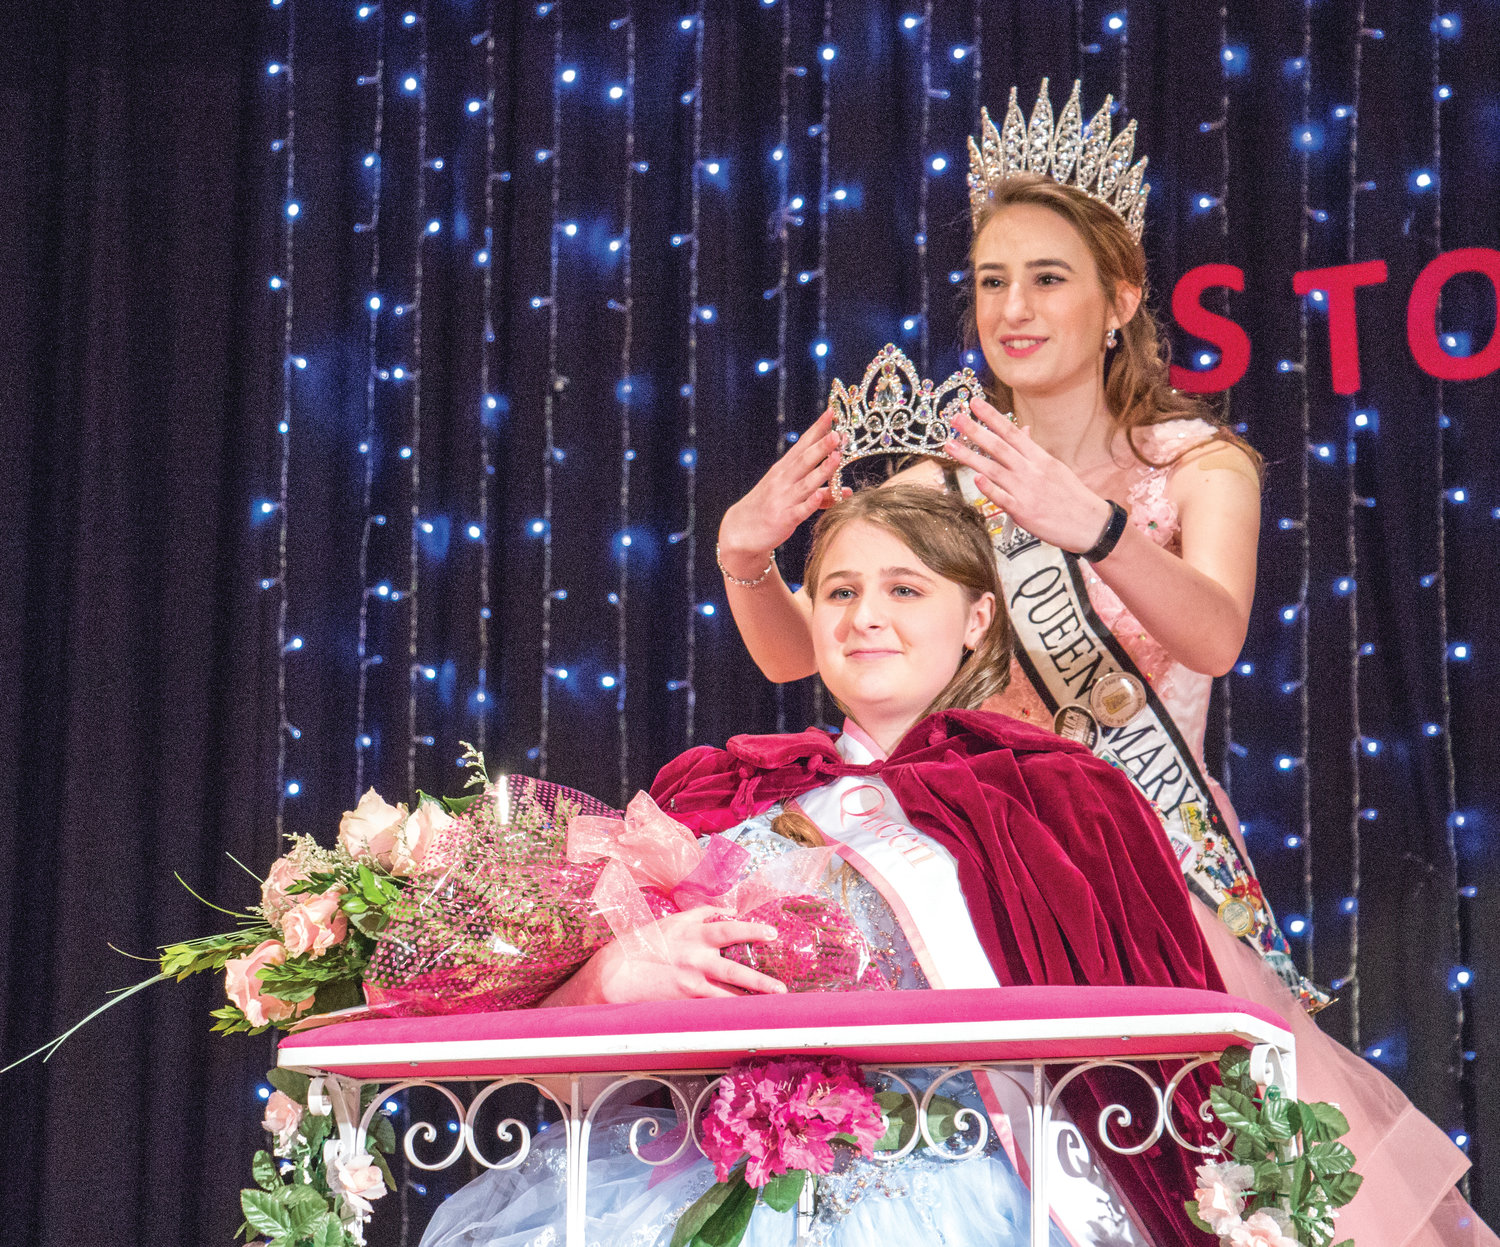 Jenessah Seebergoss is crowned the 2020 Rhody Festival queen by 2019 Queen Mary Neville at the coronation ceremony Feb. 8.